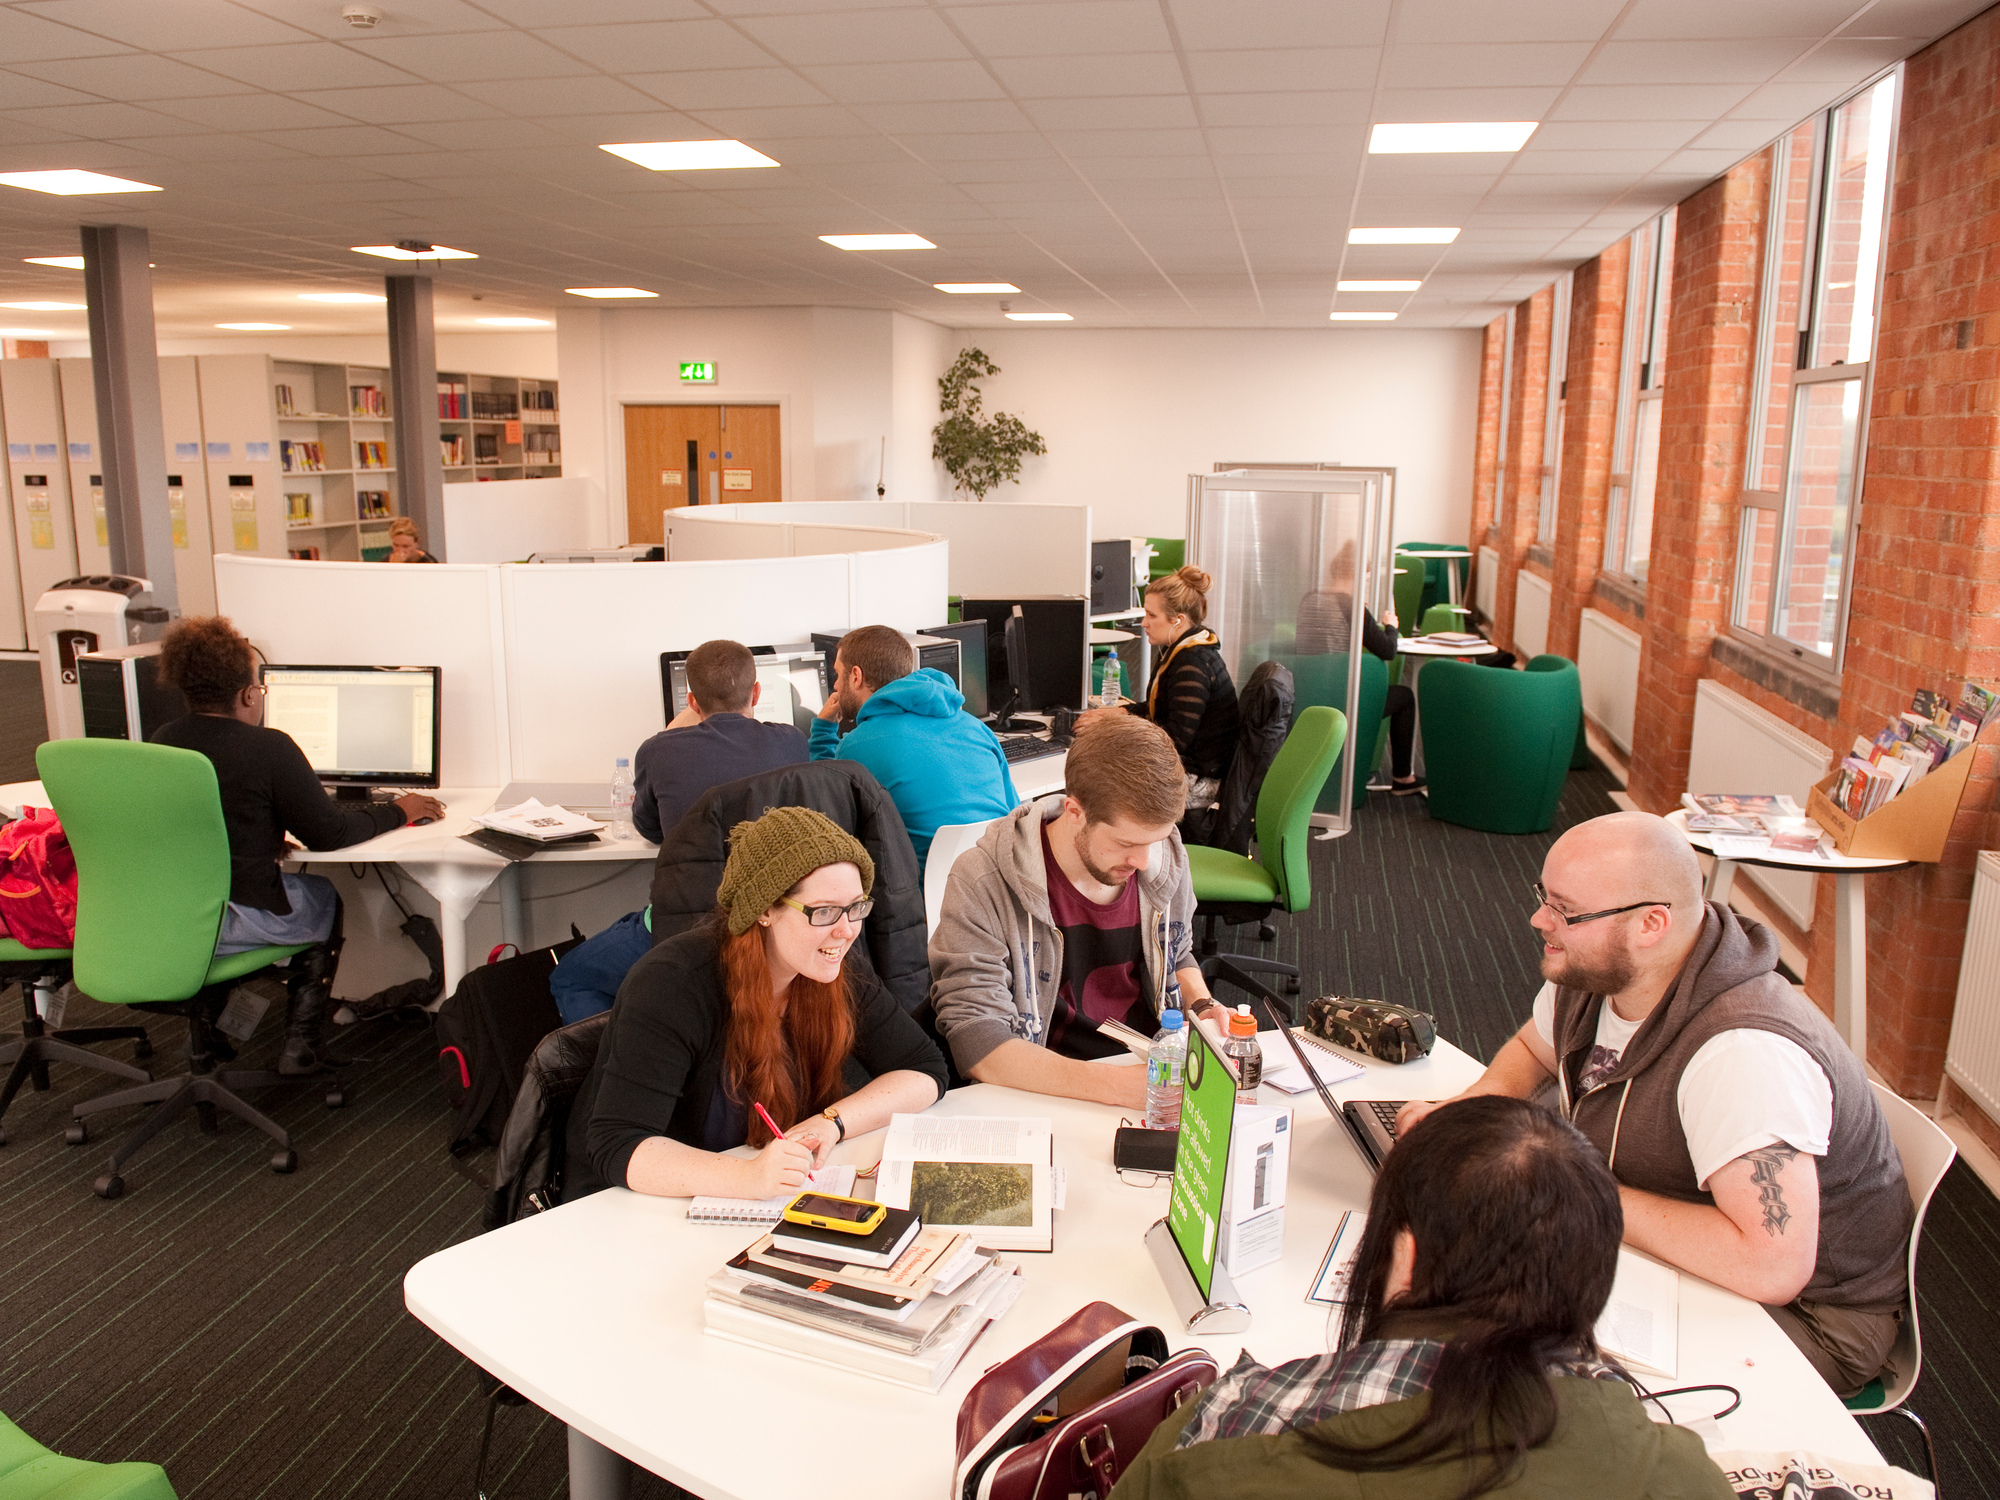 Students sat round a table together in the library.